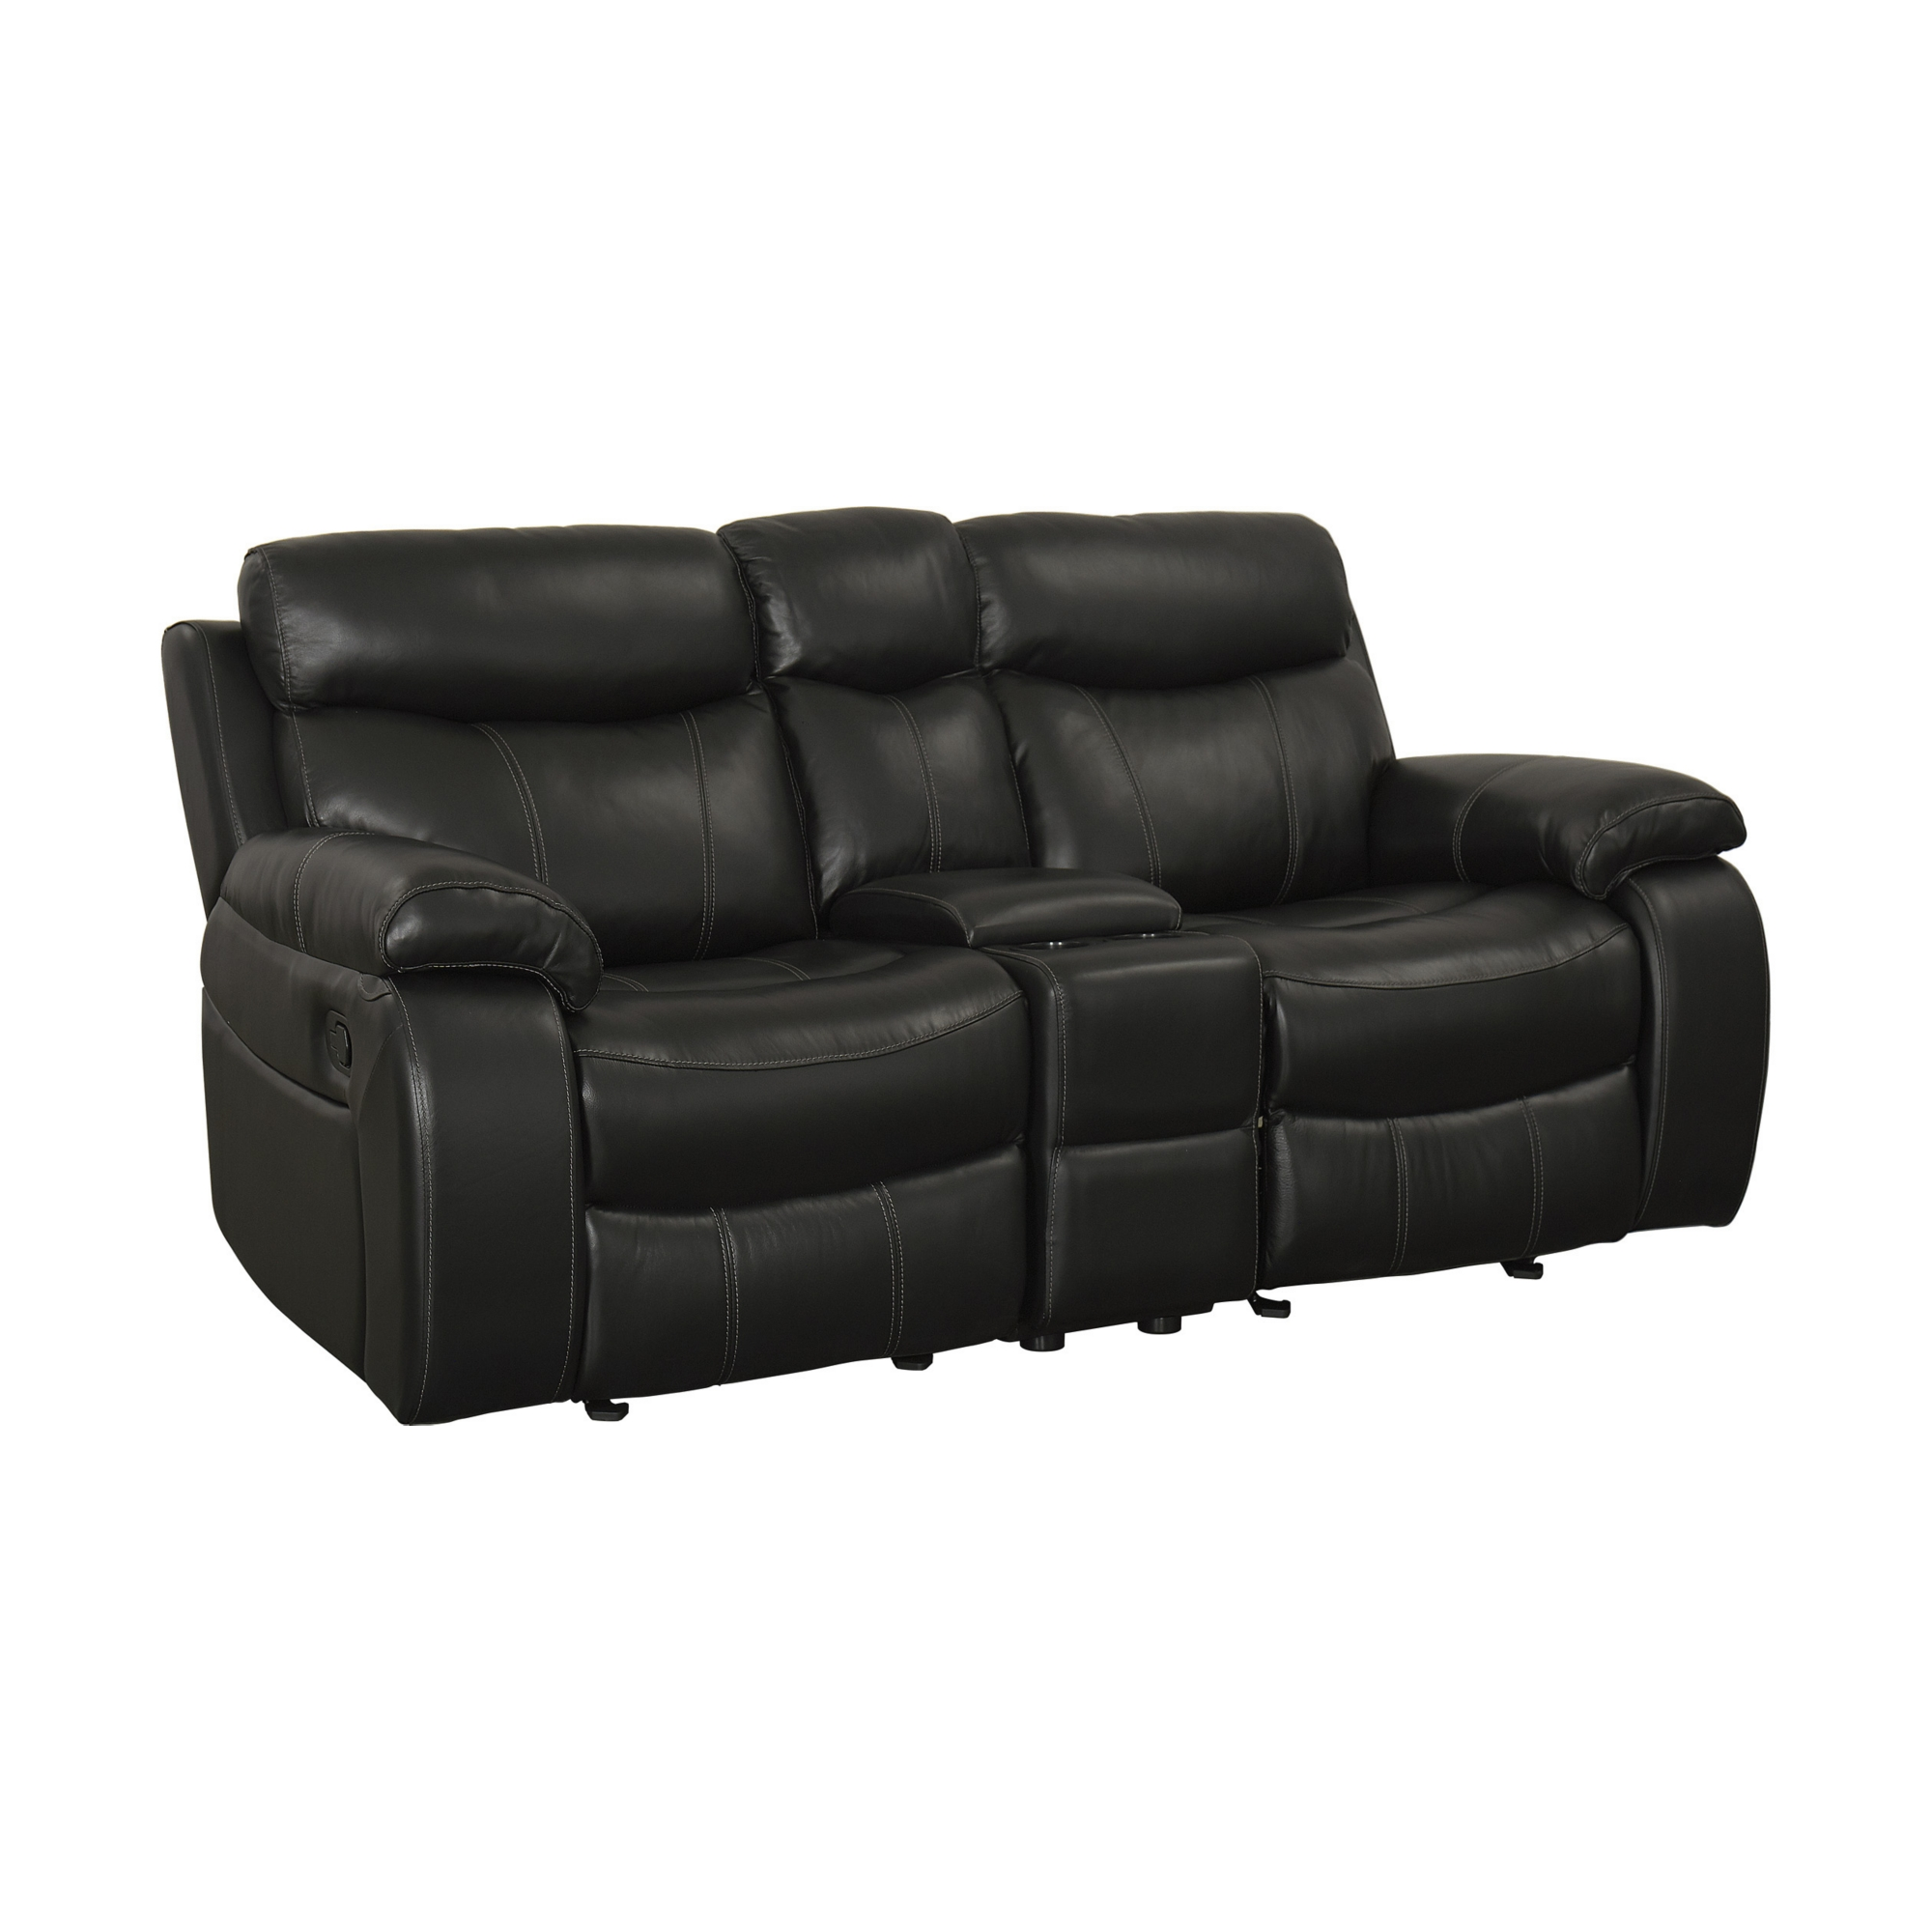 Maddux Reclining Sofa The Havertys Wrangler Recliner Is